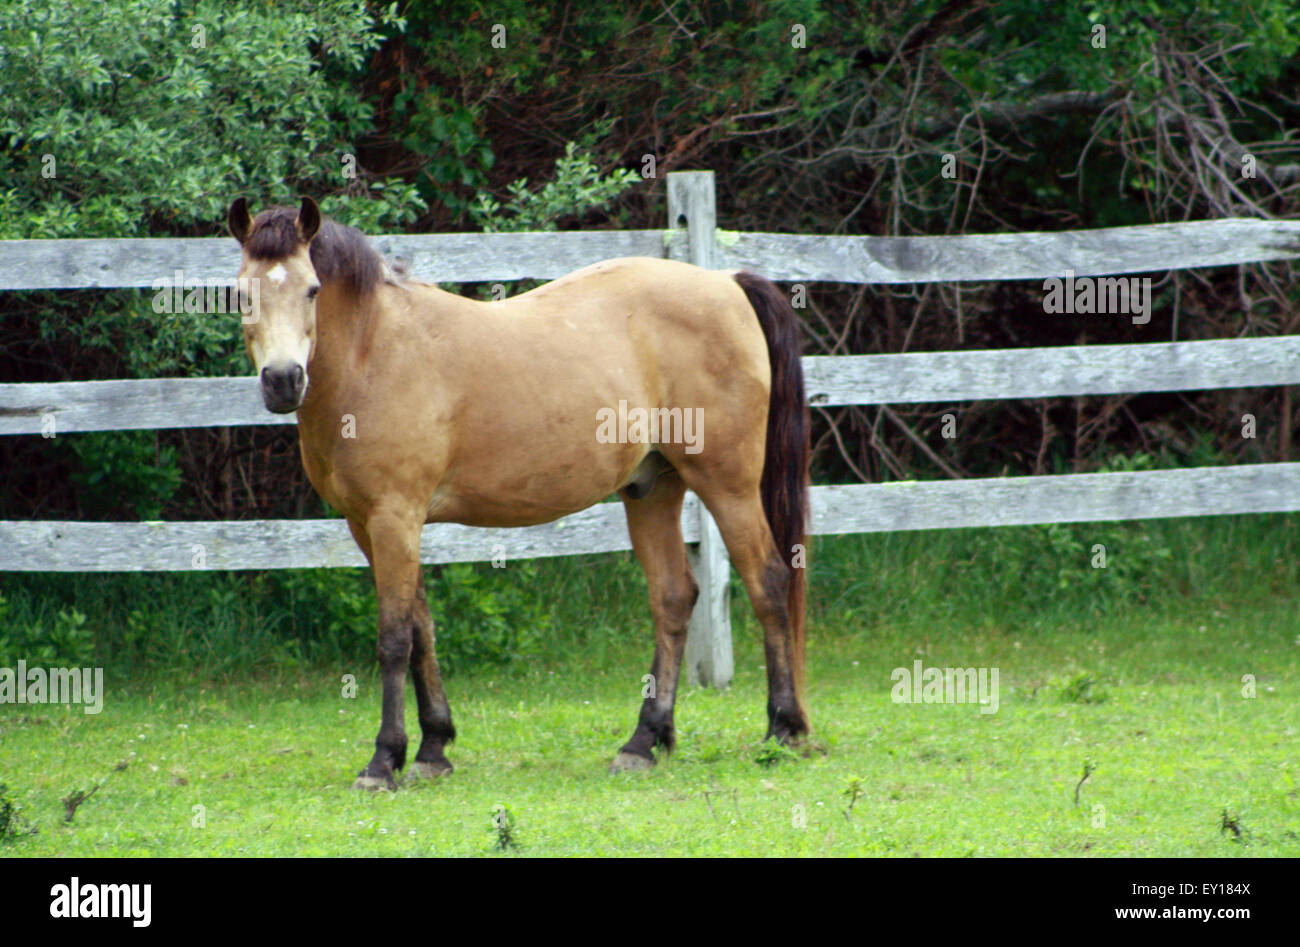 Buckskin Horse with White Star Standing in Green Pasture in the hamptons long island new york - Stock Image